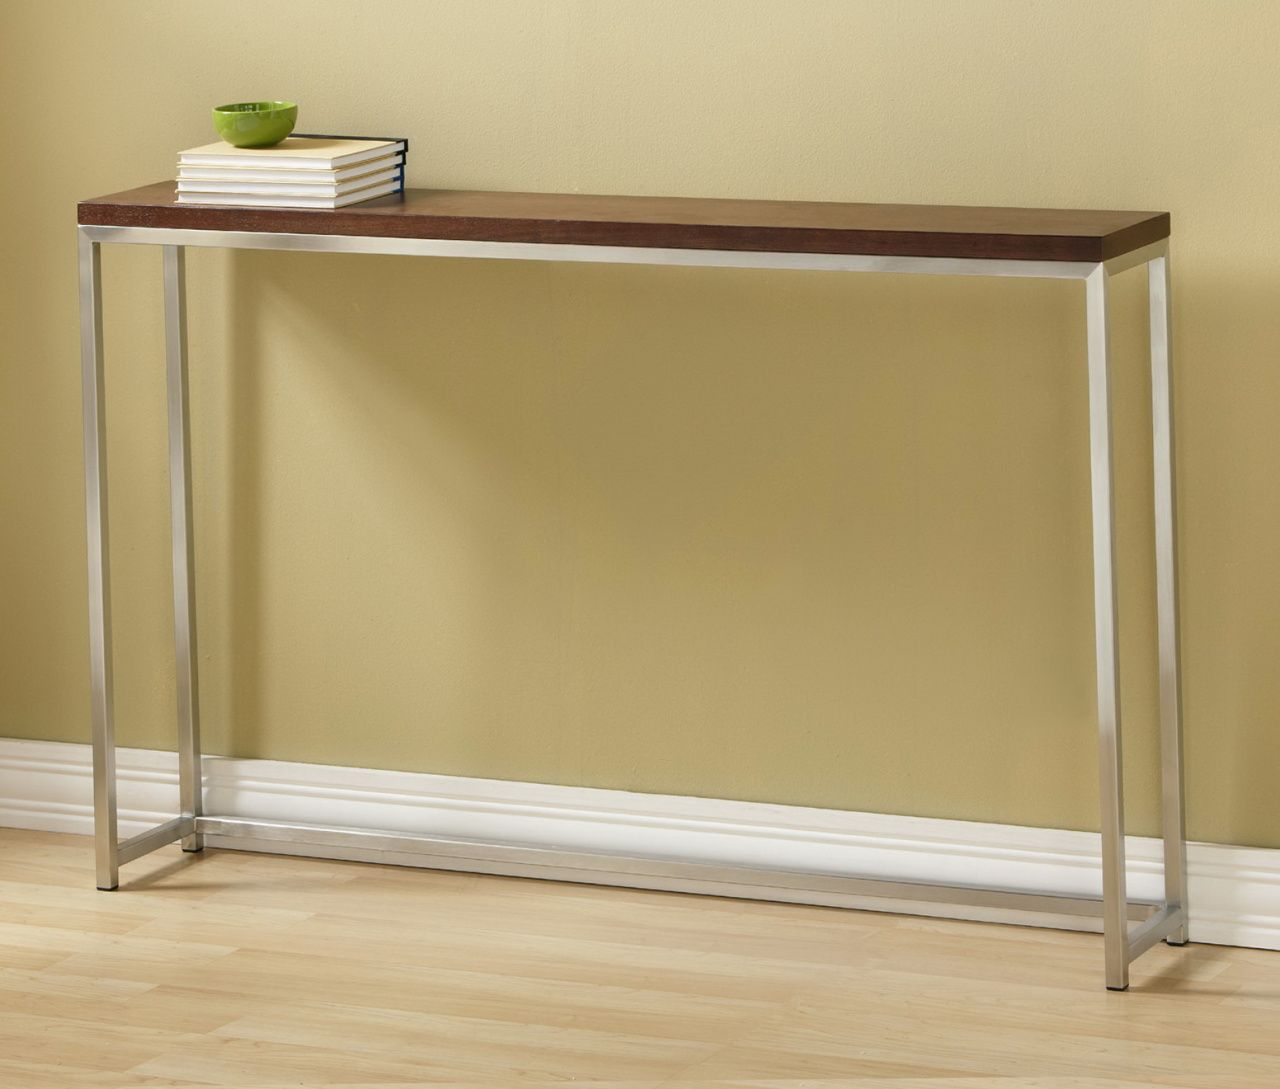 Pin By Grazia Morandi On Robines Organization Skinny Console Table Narrow Console Table Long Console Table